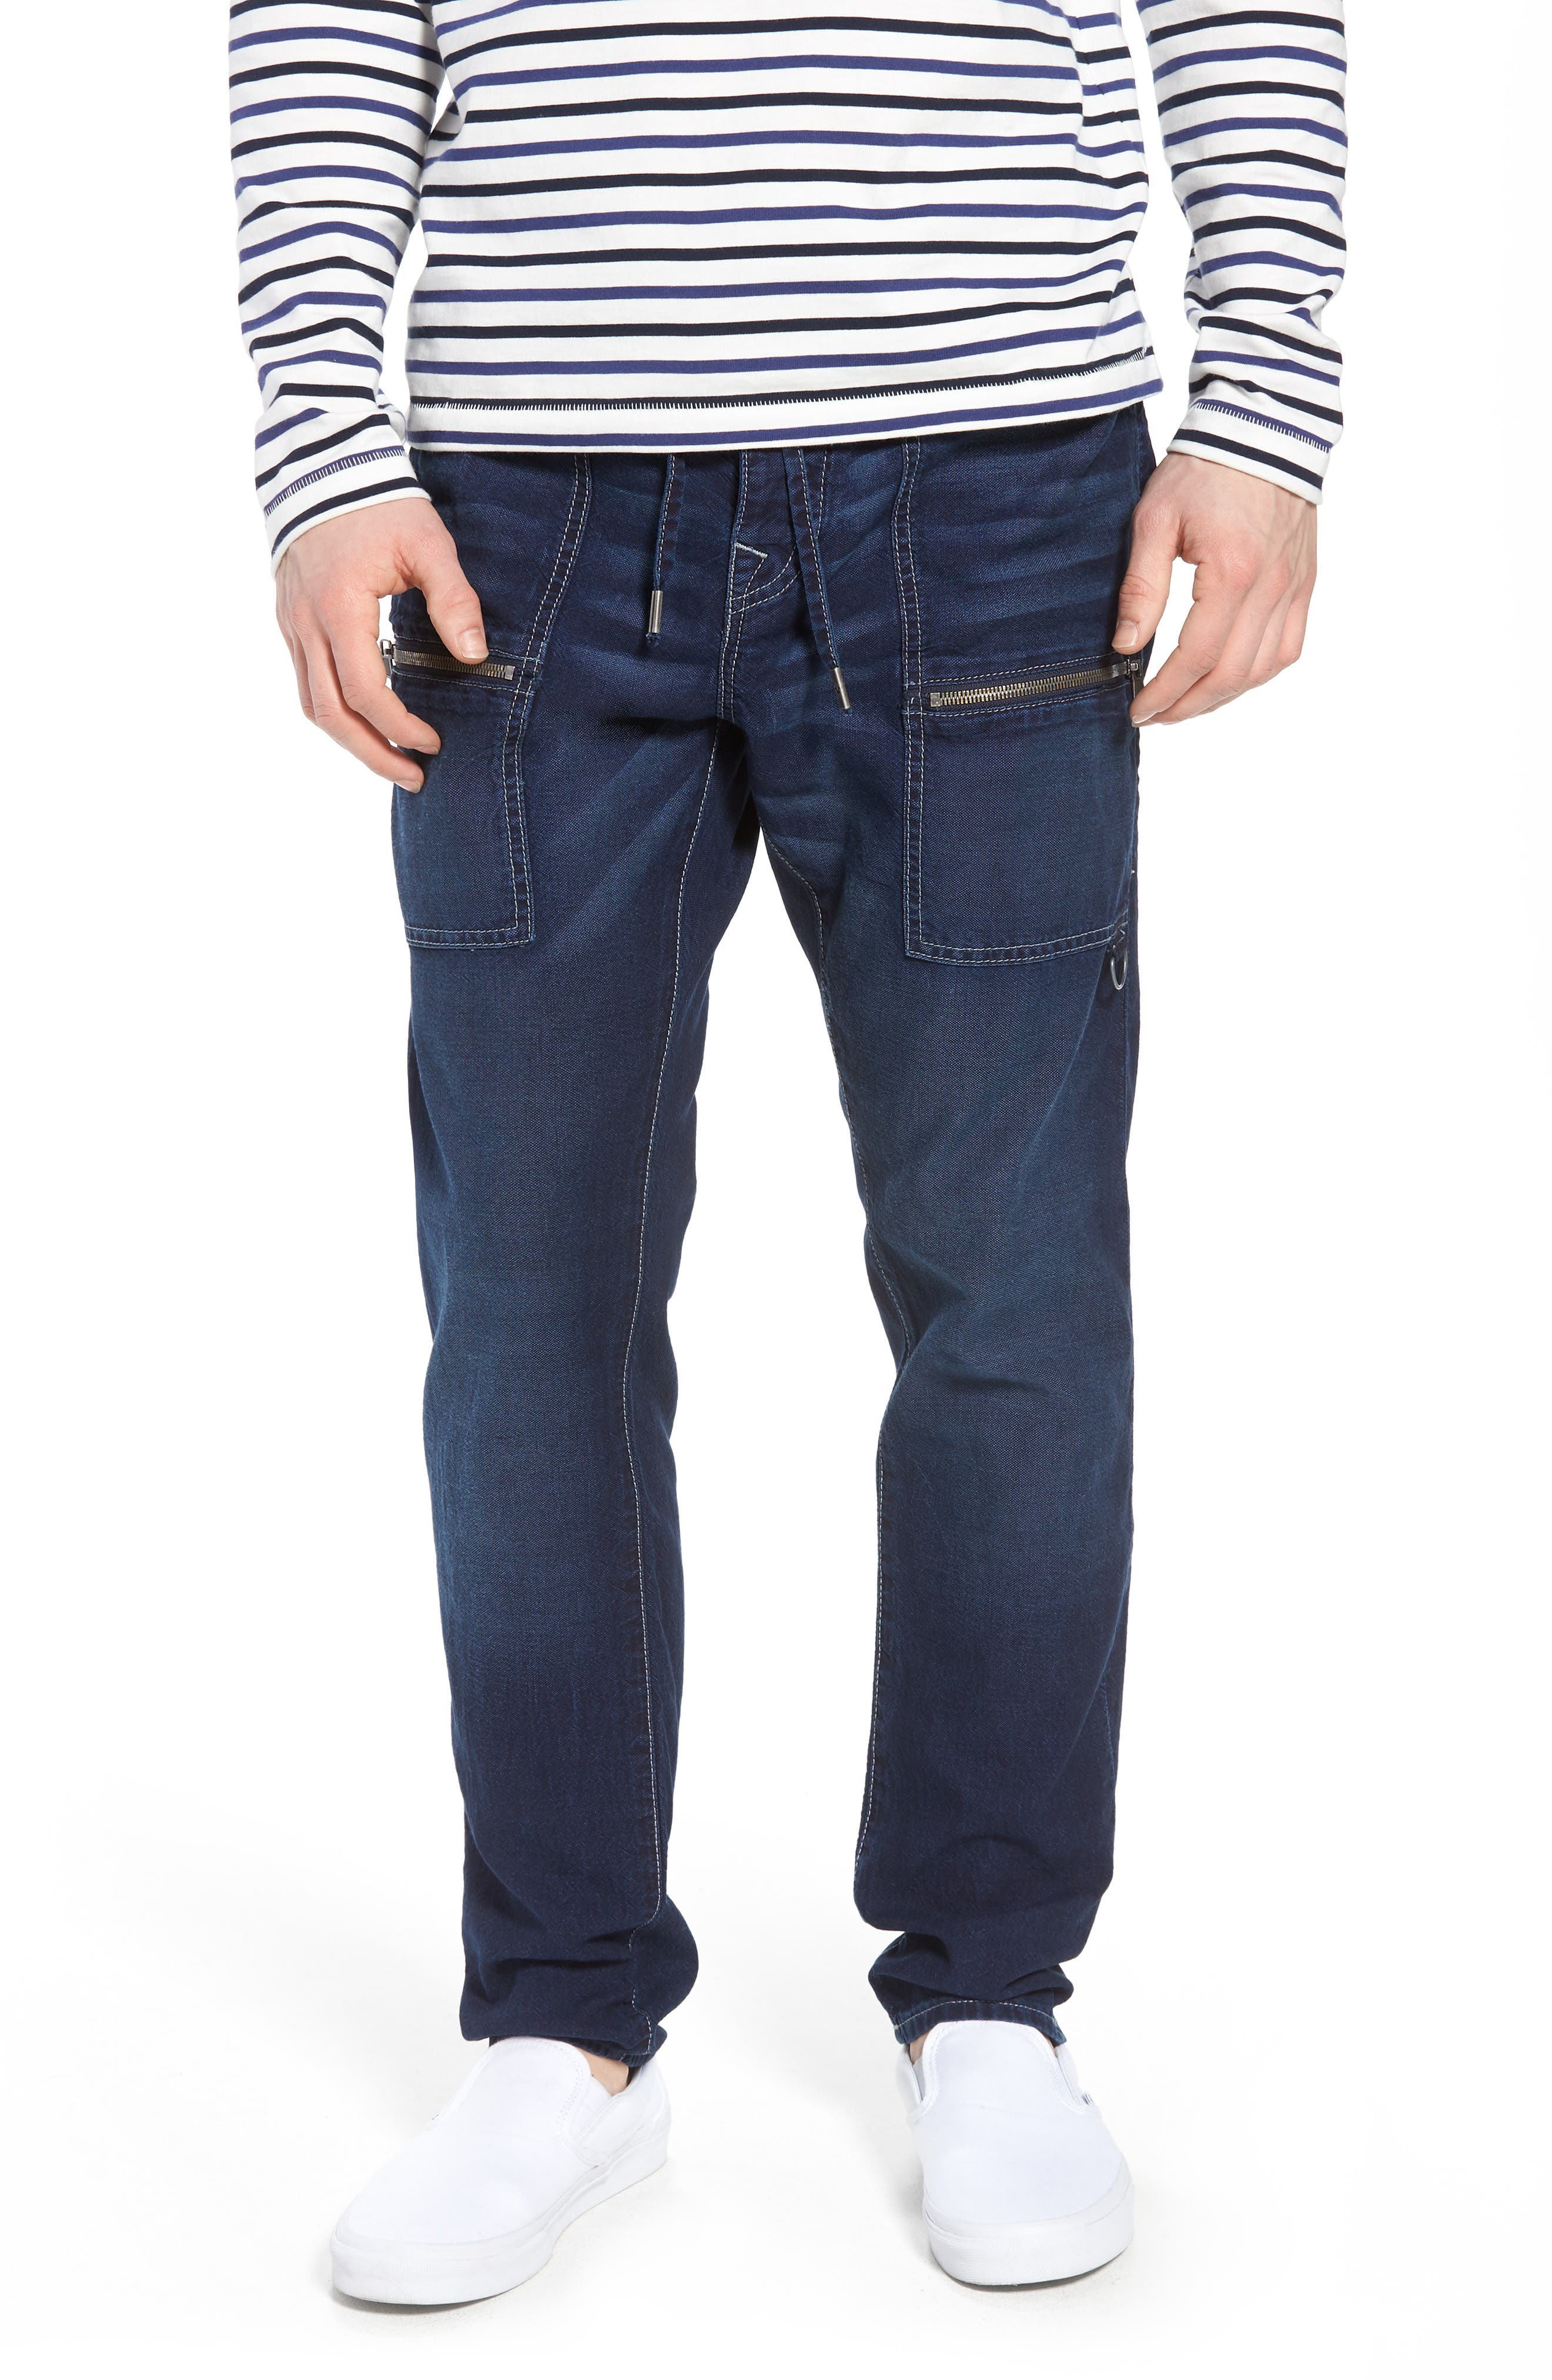 Trail Utility Jeans,                             Main thumbnail 1, color,                             Union Special